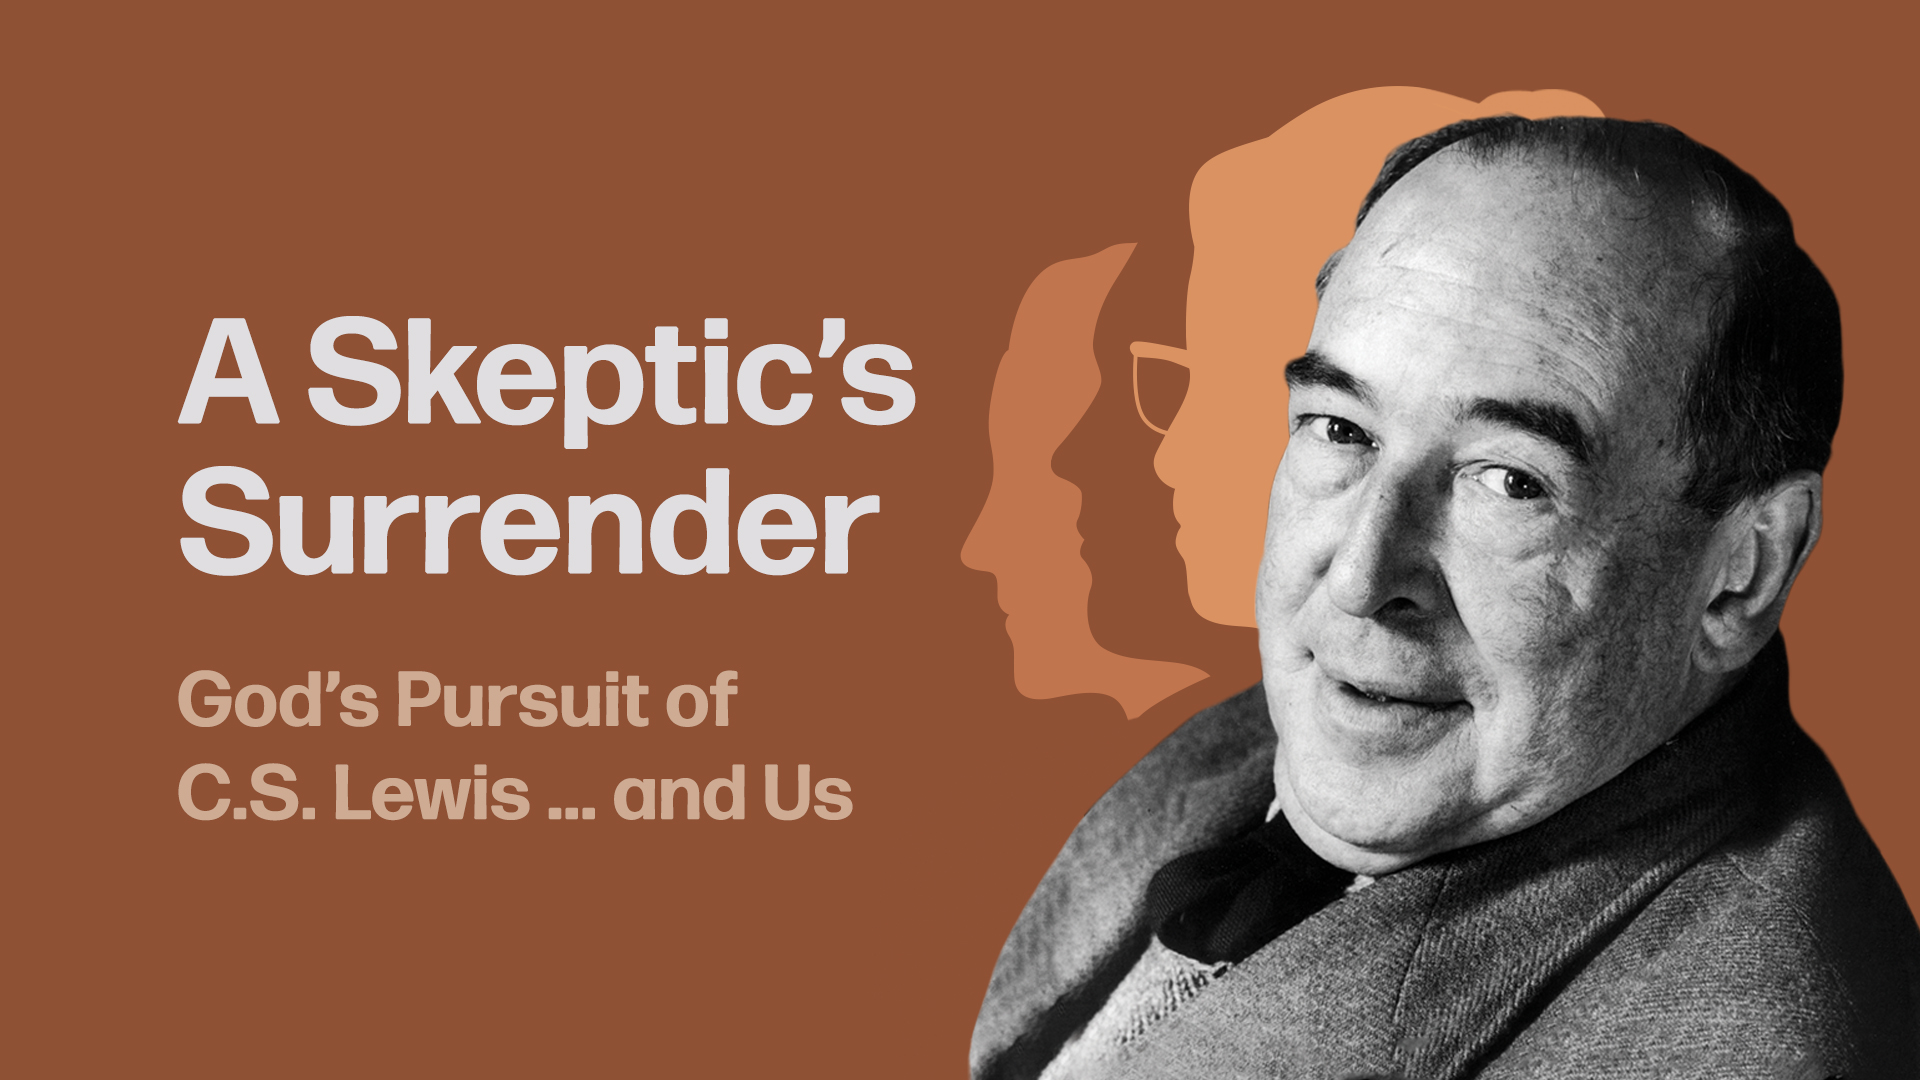 A Skeptic's Surrender: God's Pursuit of C.S. Lewis and Us